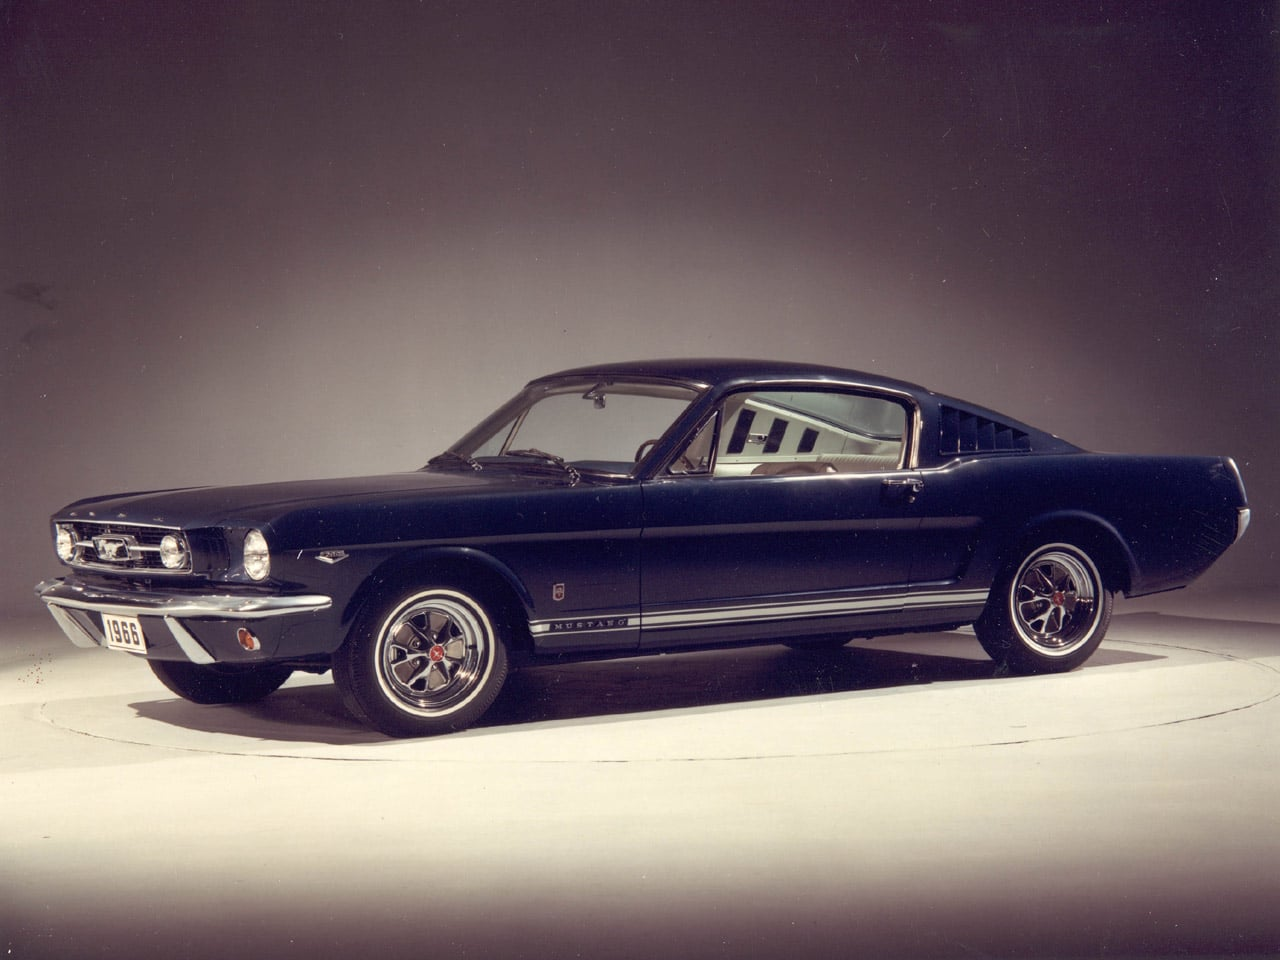 For years, steve has been partial to '70 mustangs, so his classic theme for his '66 fastback is part early gt, part '70 mach 1. Srlg Sglsjgsgi Slgjslss Ford Mustang 1960